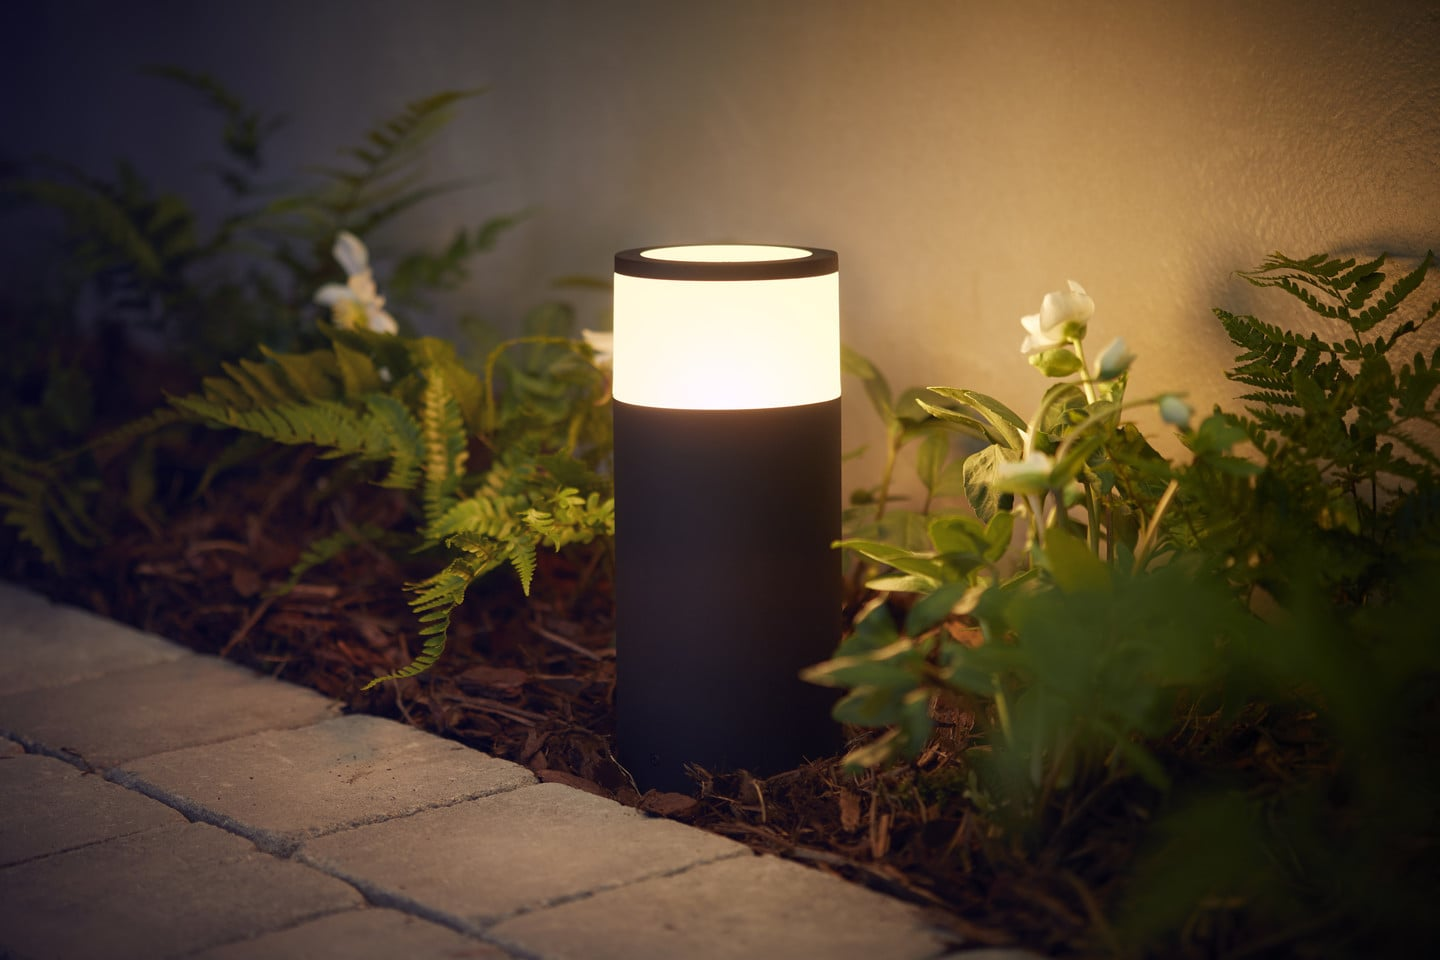 Have a look at Philips Hue's new outdoor smart lights